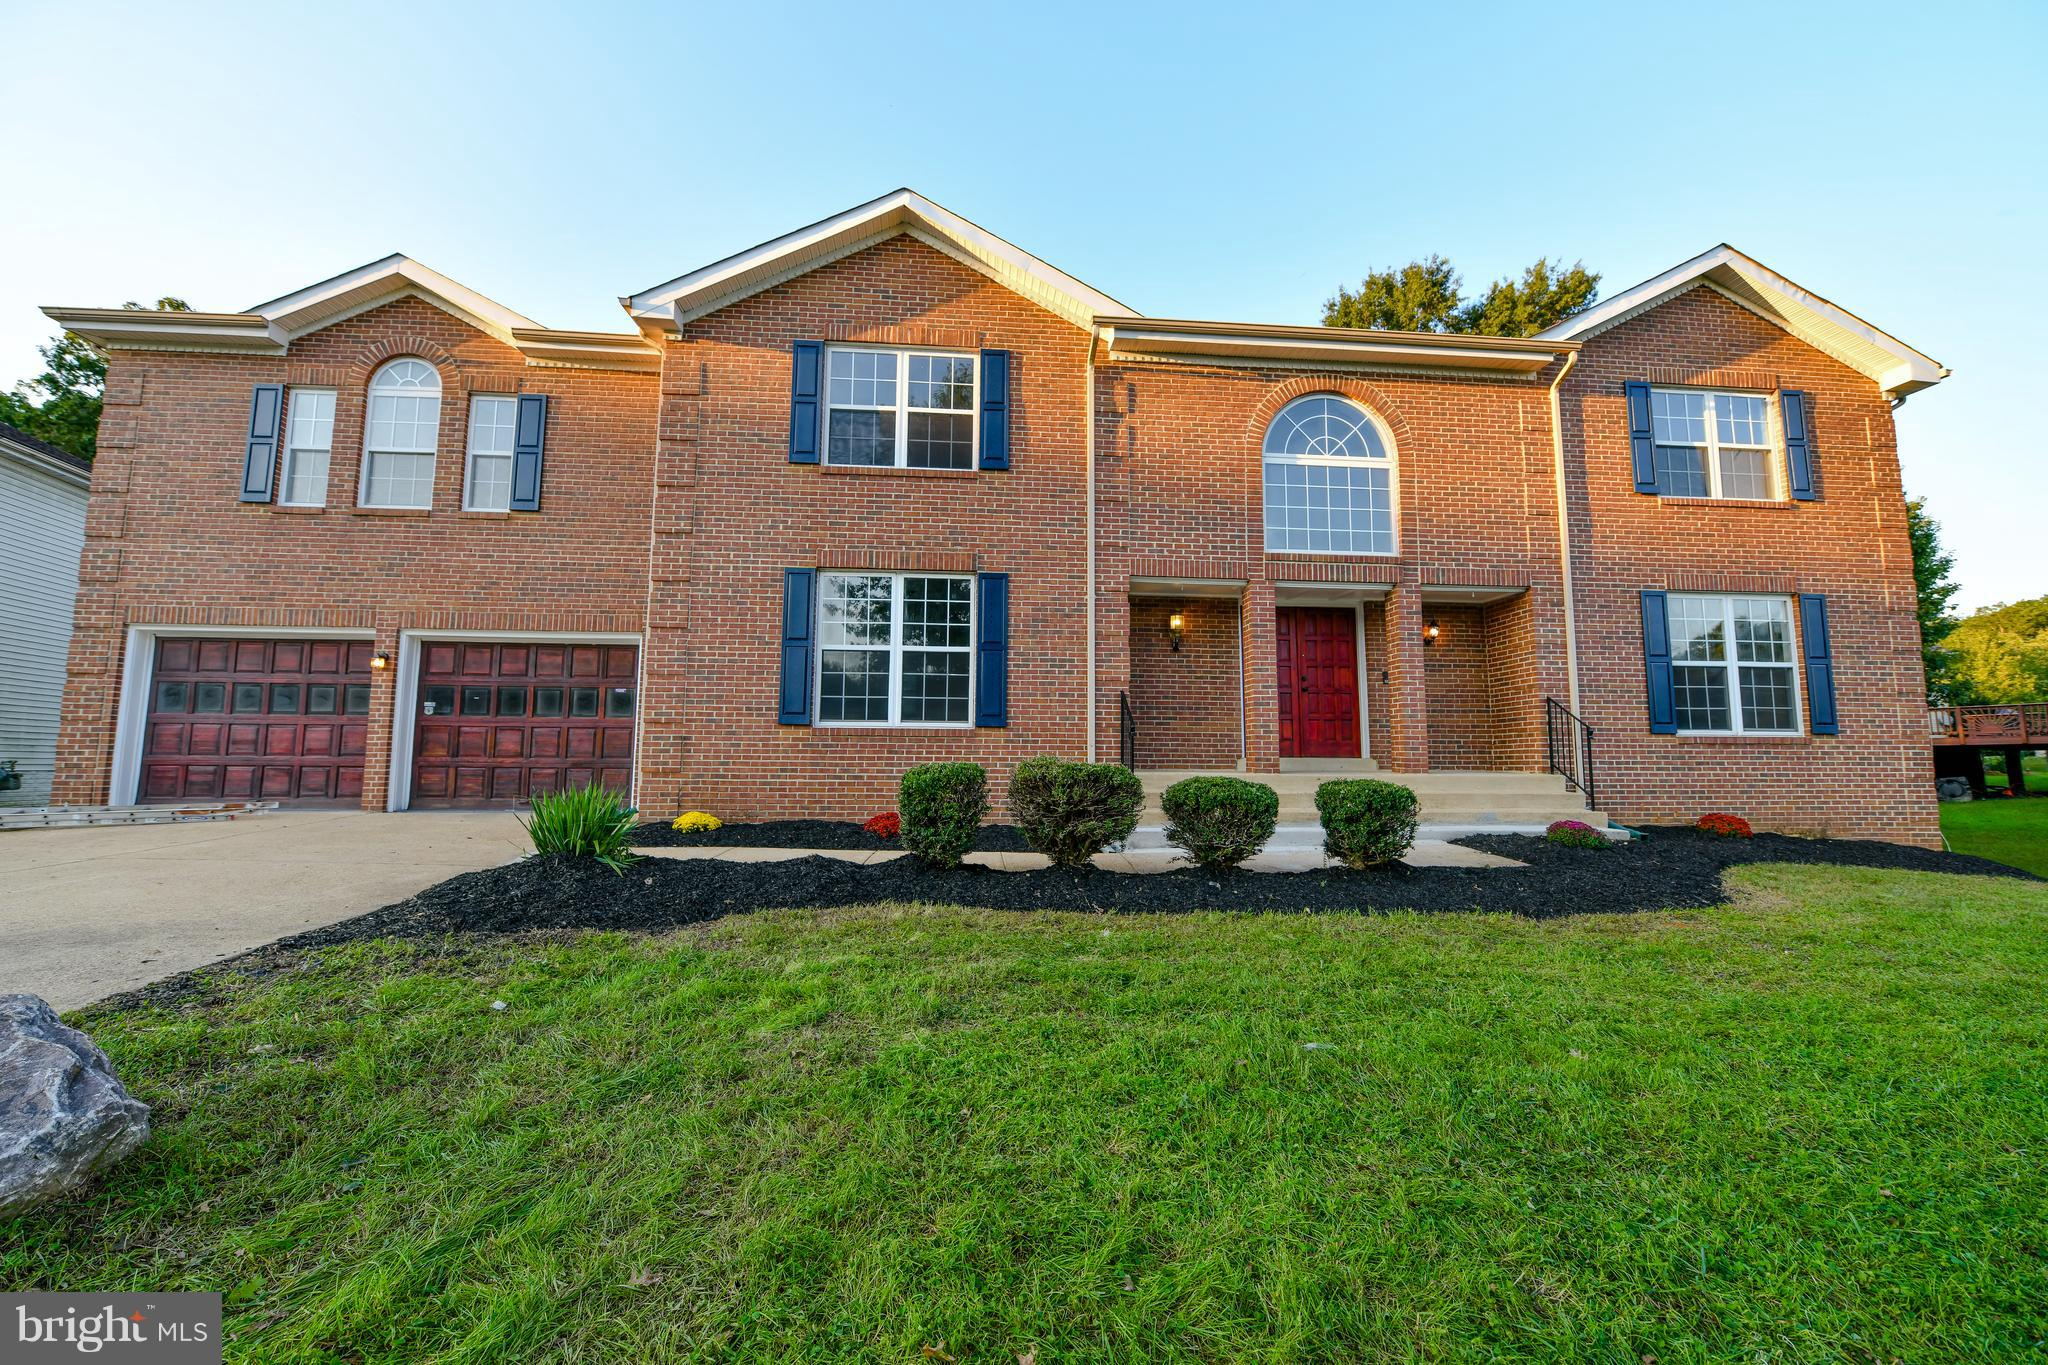 208 MALER COURT, ACCOKEEK, MD 20607